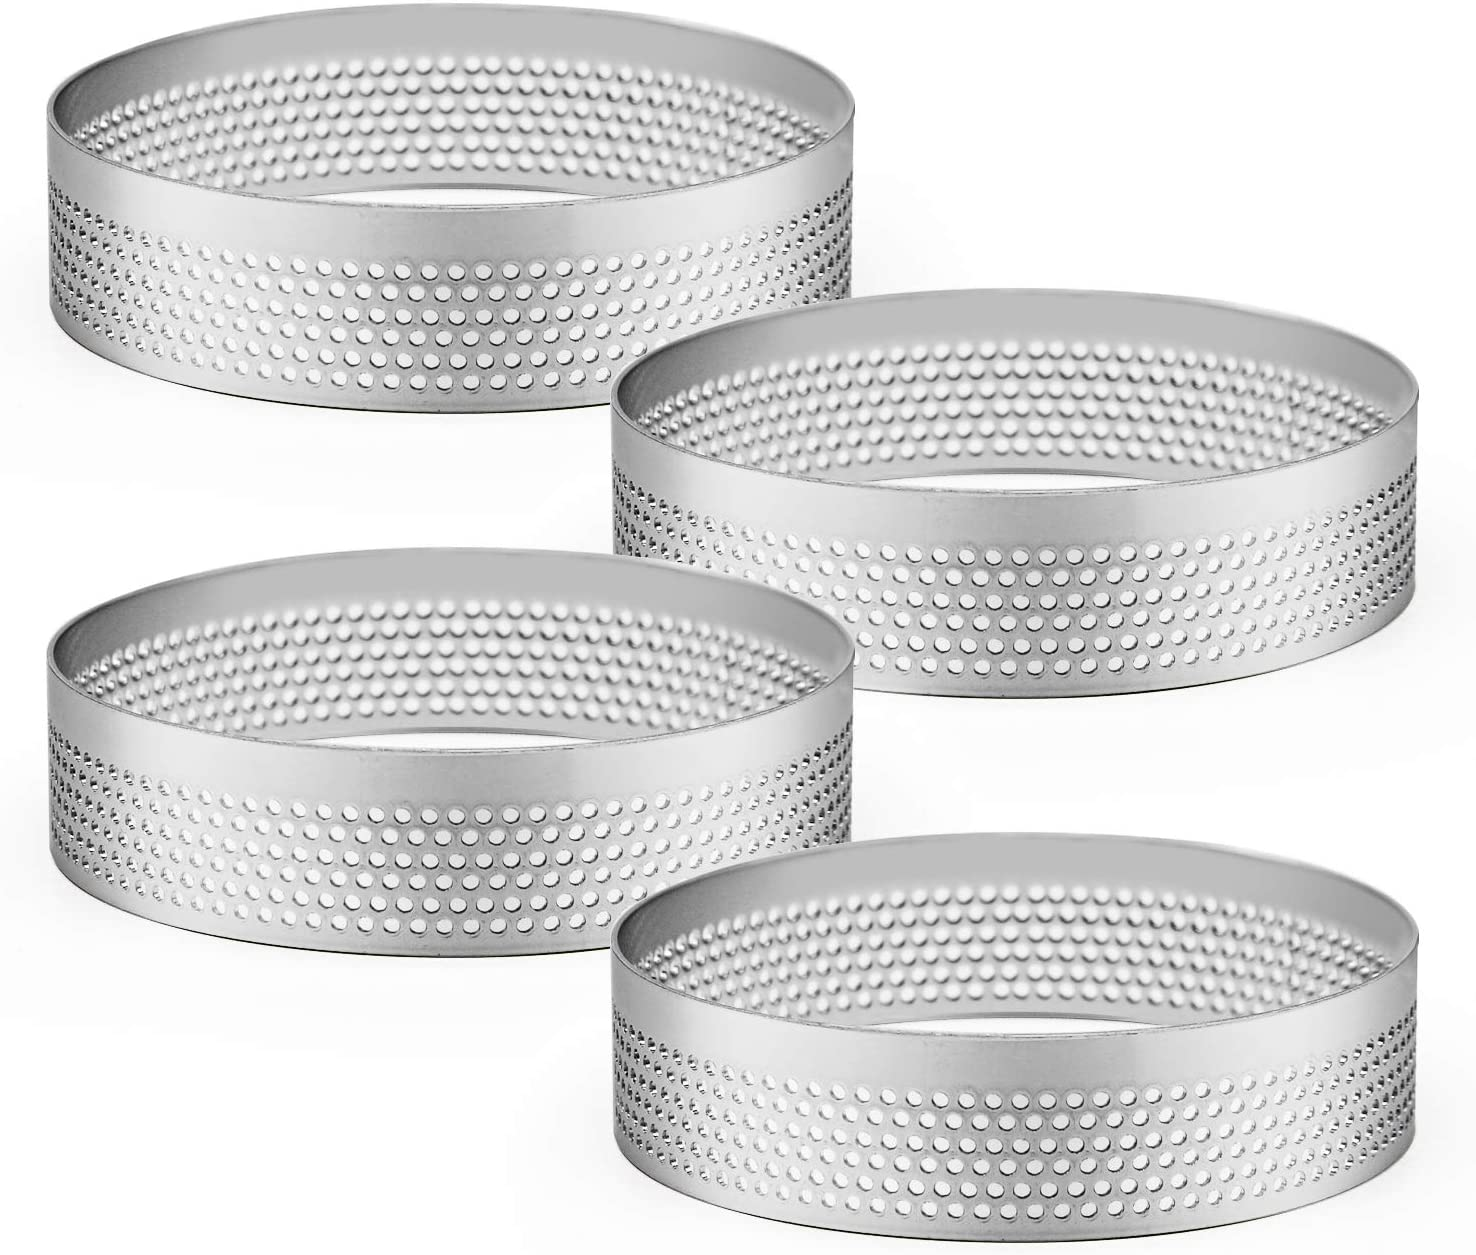 Cutter Stainless Steel Tart Ring Perforated Mousse Cake Mold Circle Mould